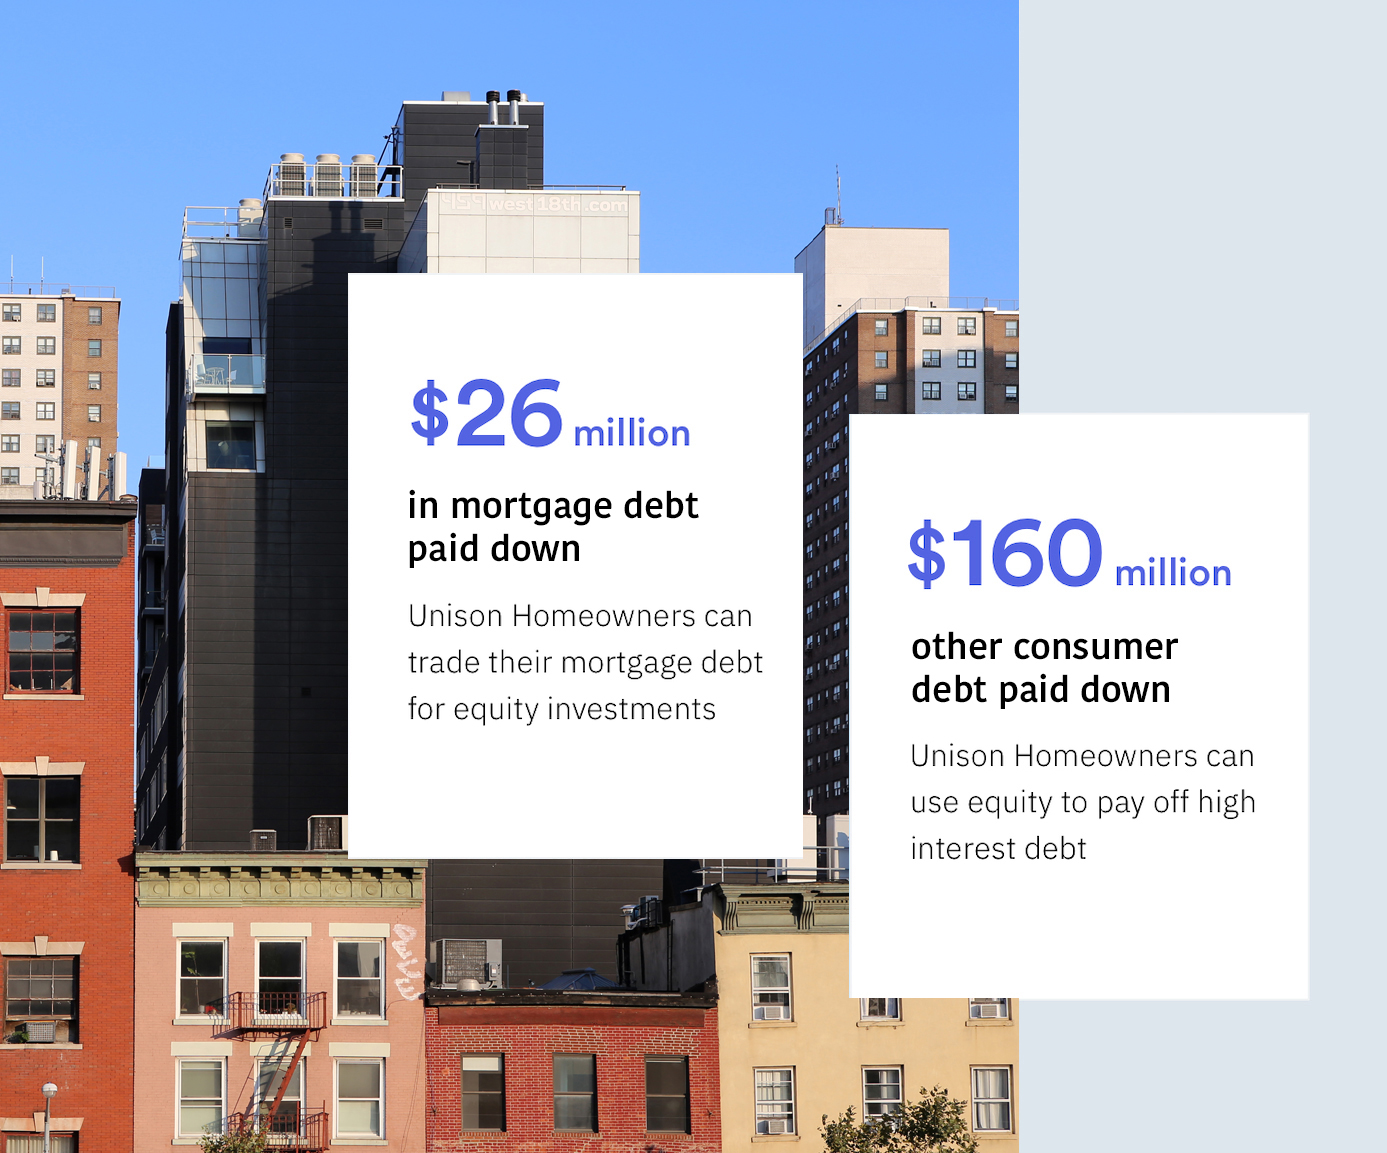 Unison Homeowners can trade their mortgage debt for equity investments and use equity to pay off high interest debt.